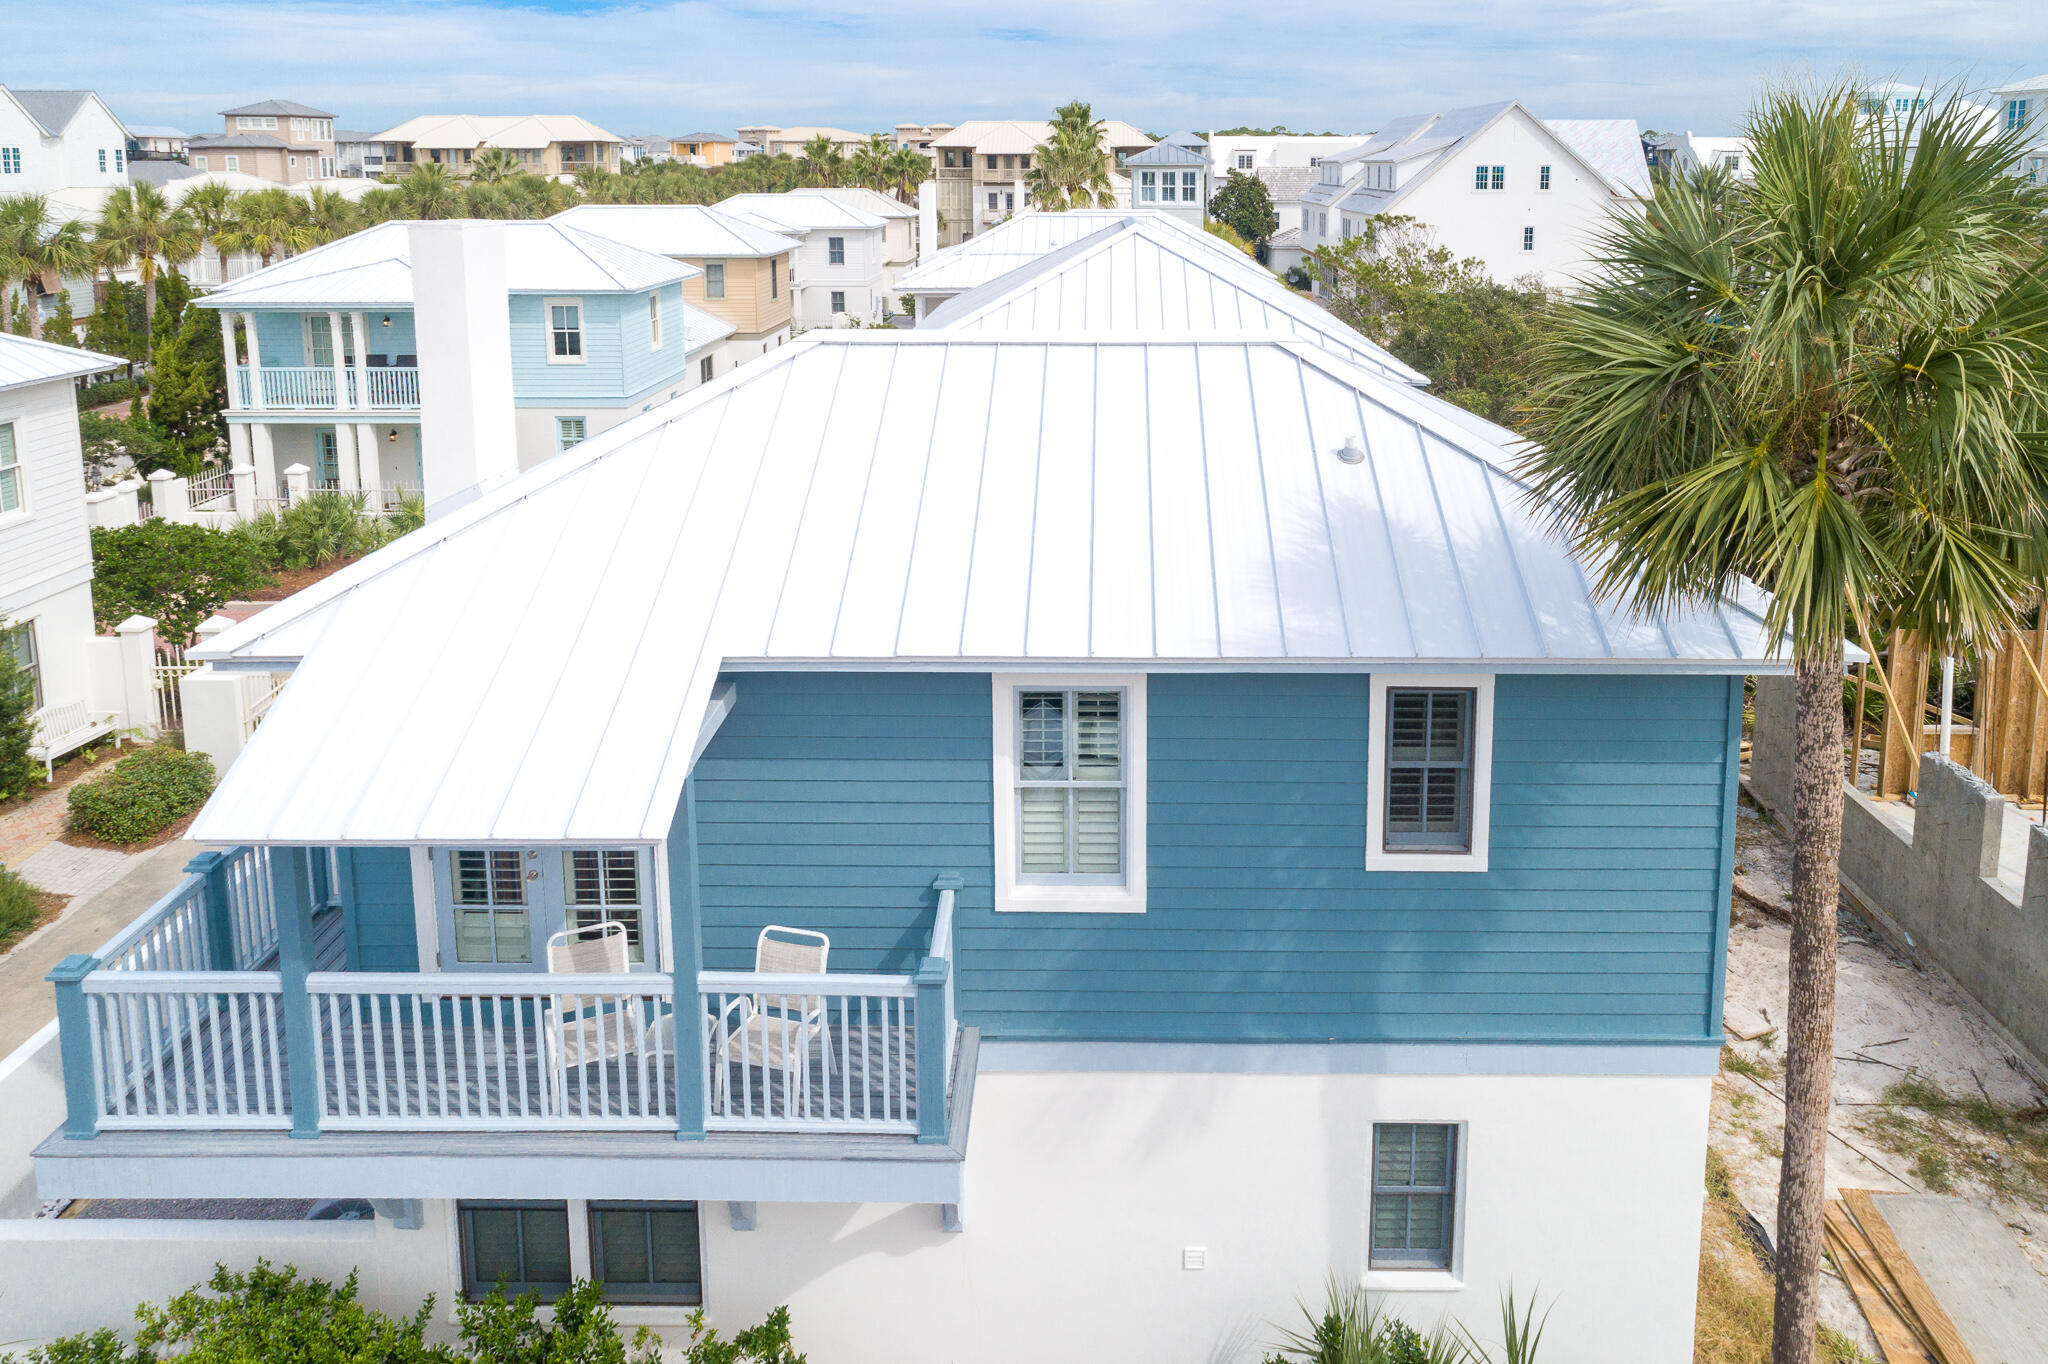 This 2 bed/ 3 bath Florida beach cottage with Gulf View is located in Sunset Beach Community, with a